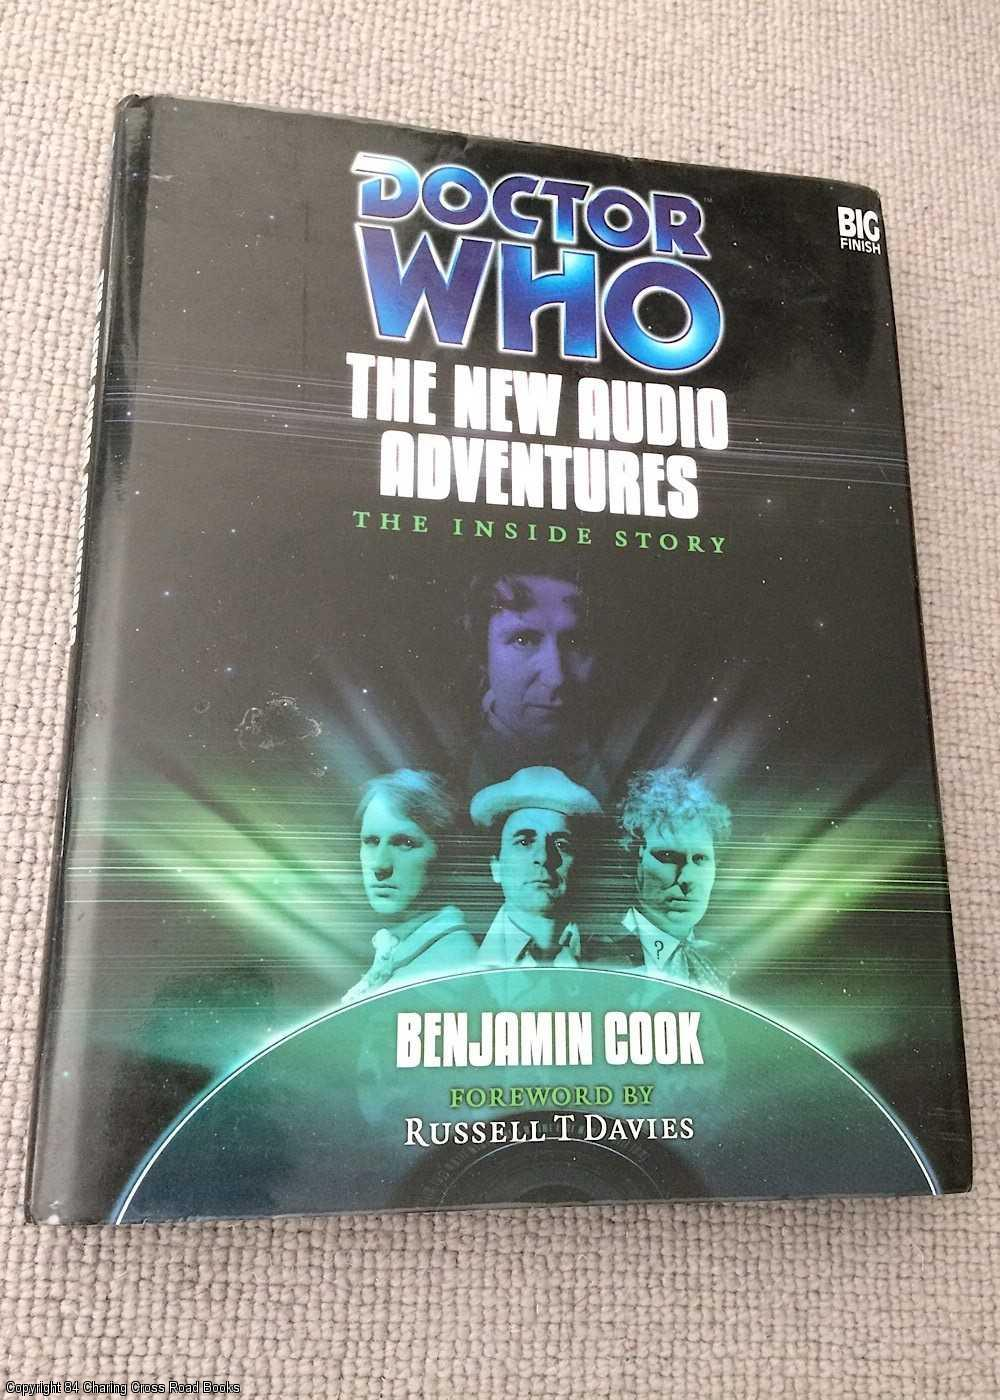 BENJAMIN COOK - Doctor Who: The New Audio Adventures - The Inside Story